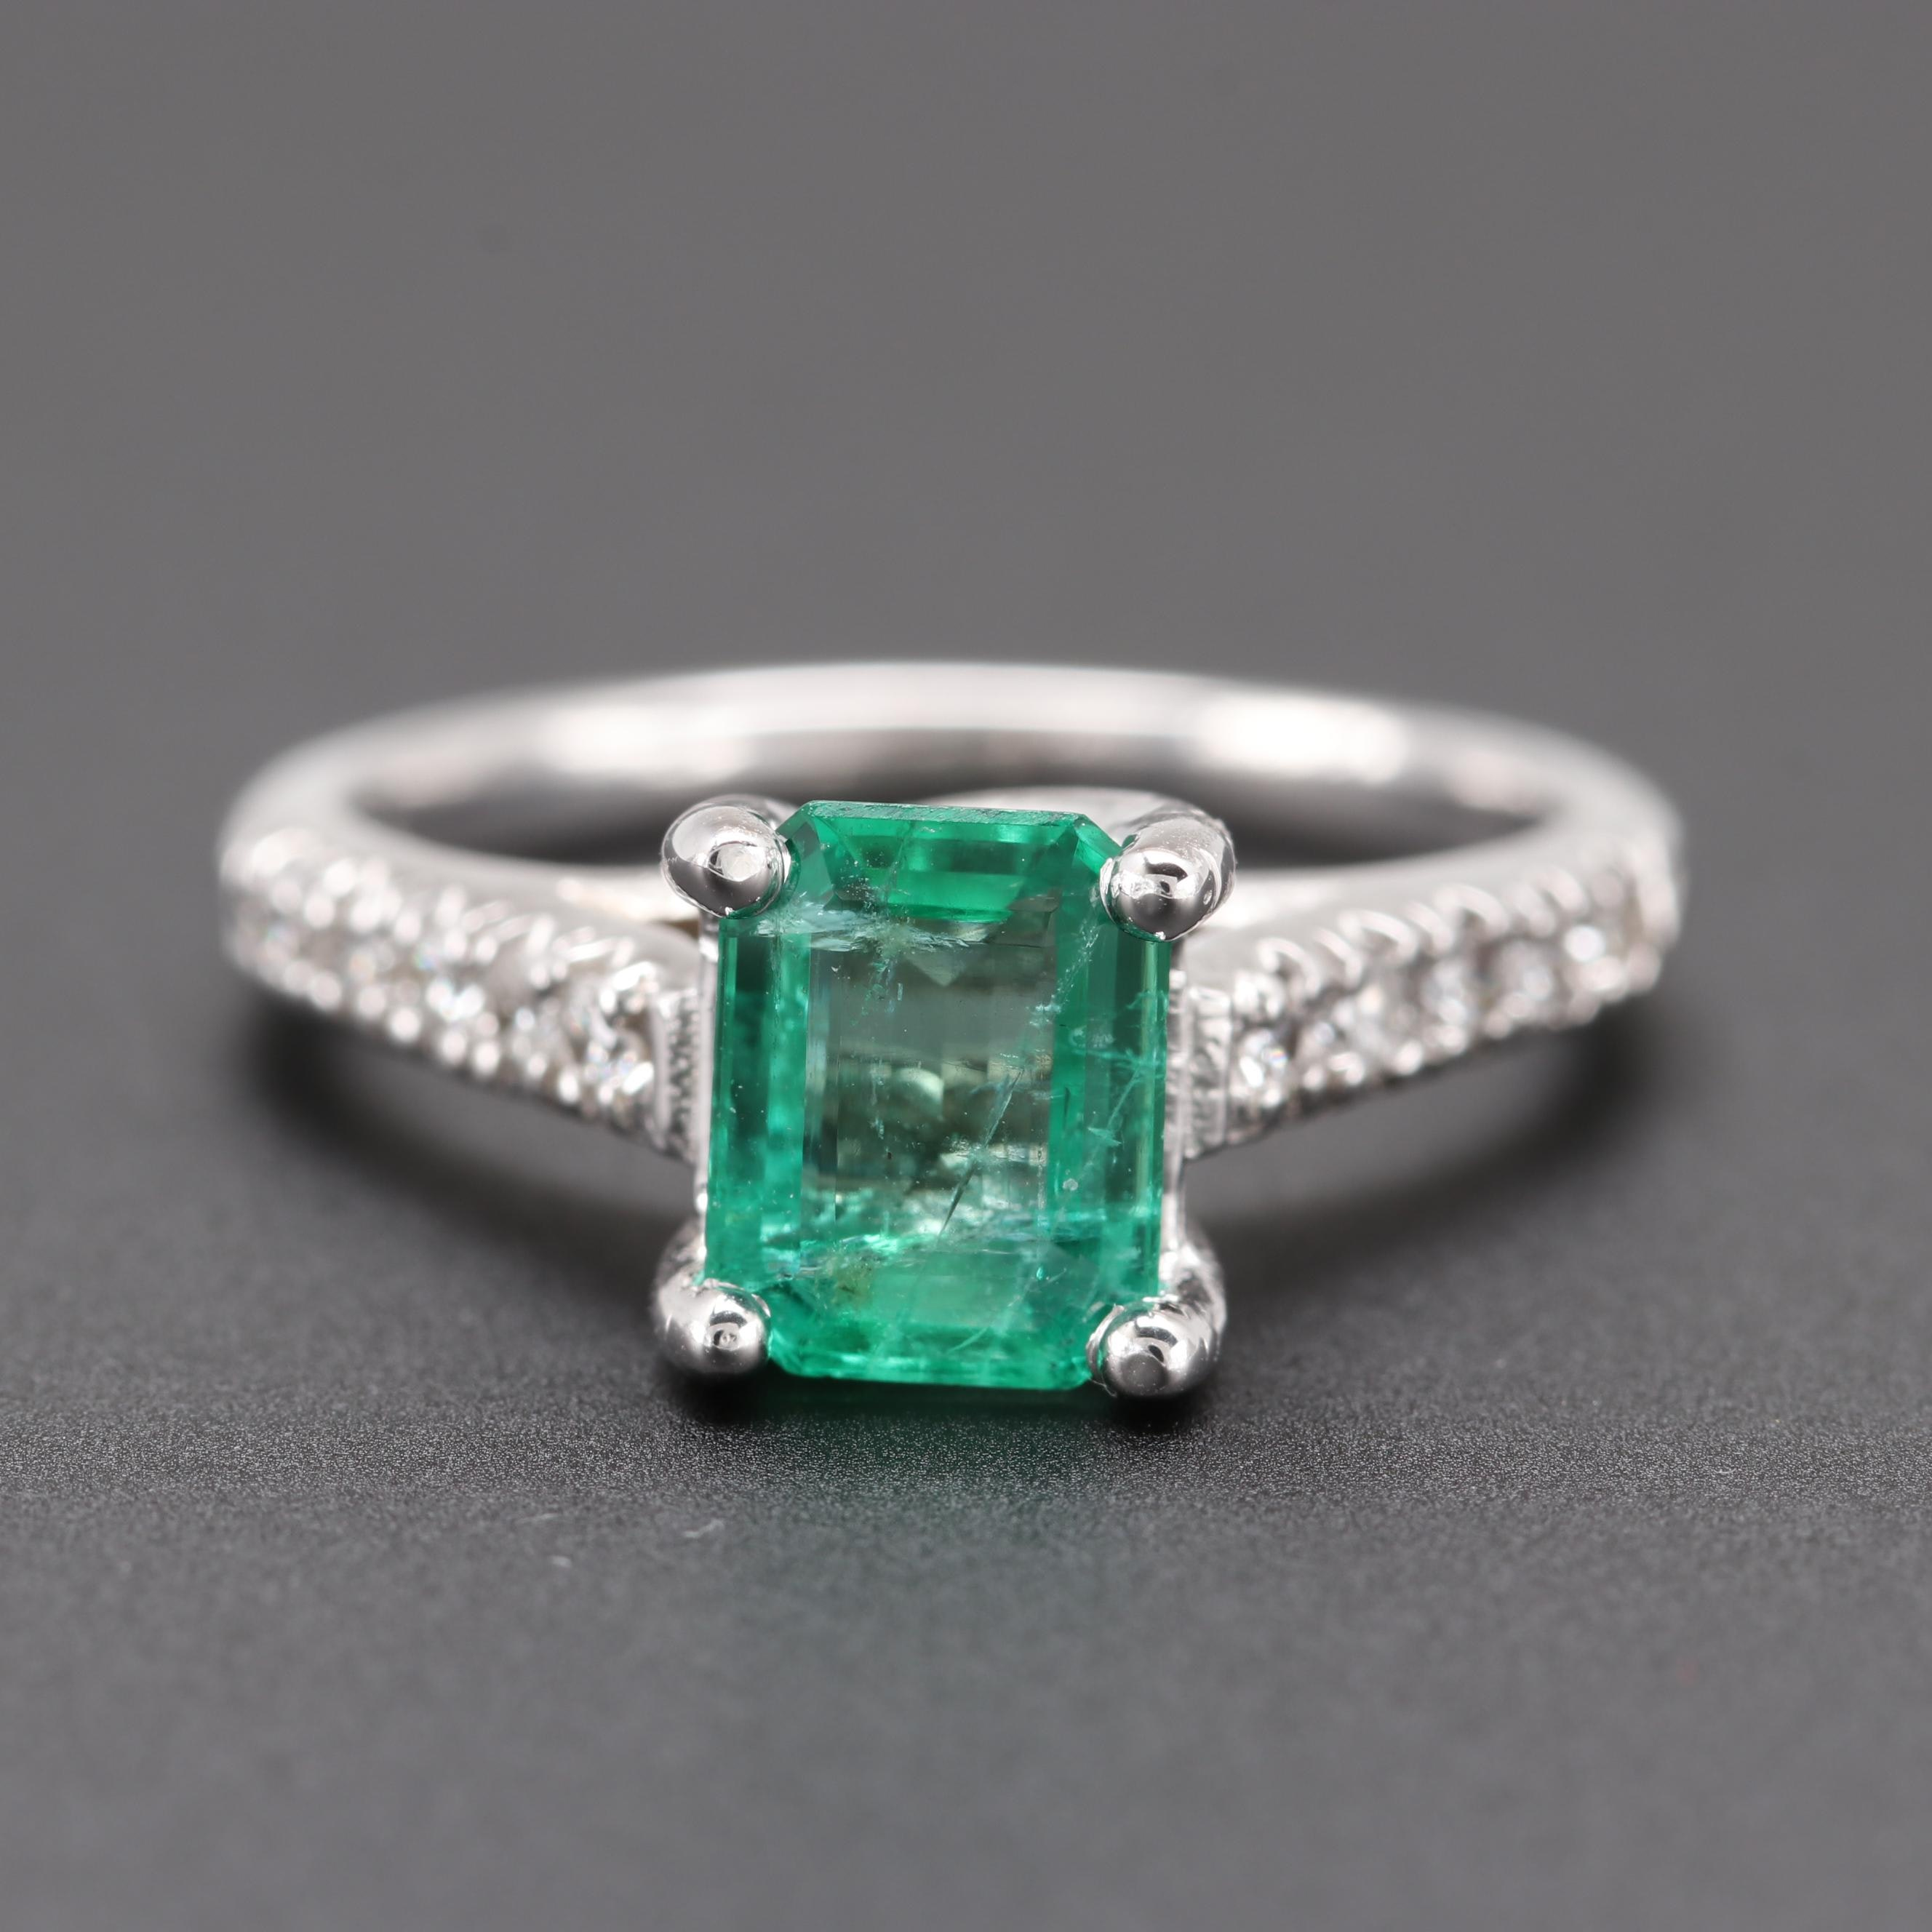 14K White Gold 1.01 CT Emerald and Diamond Ring